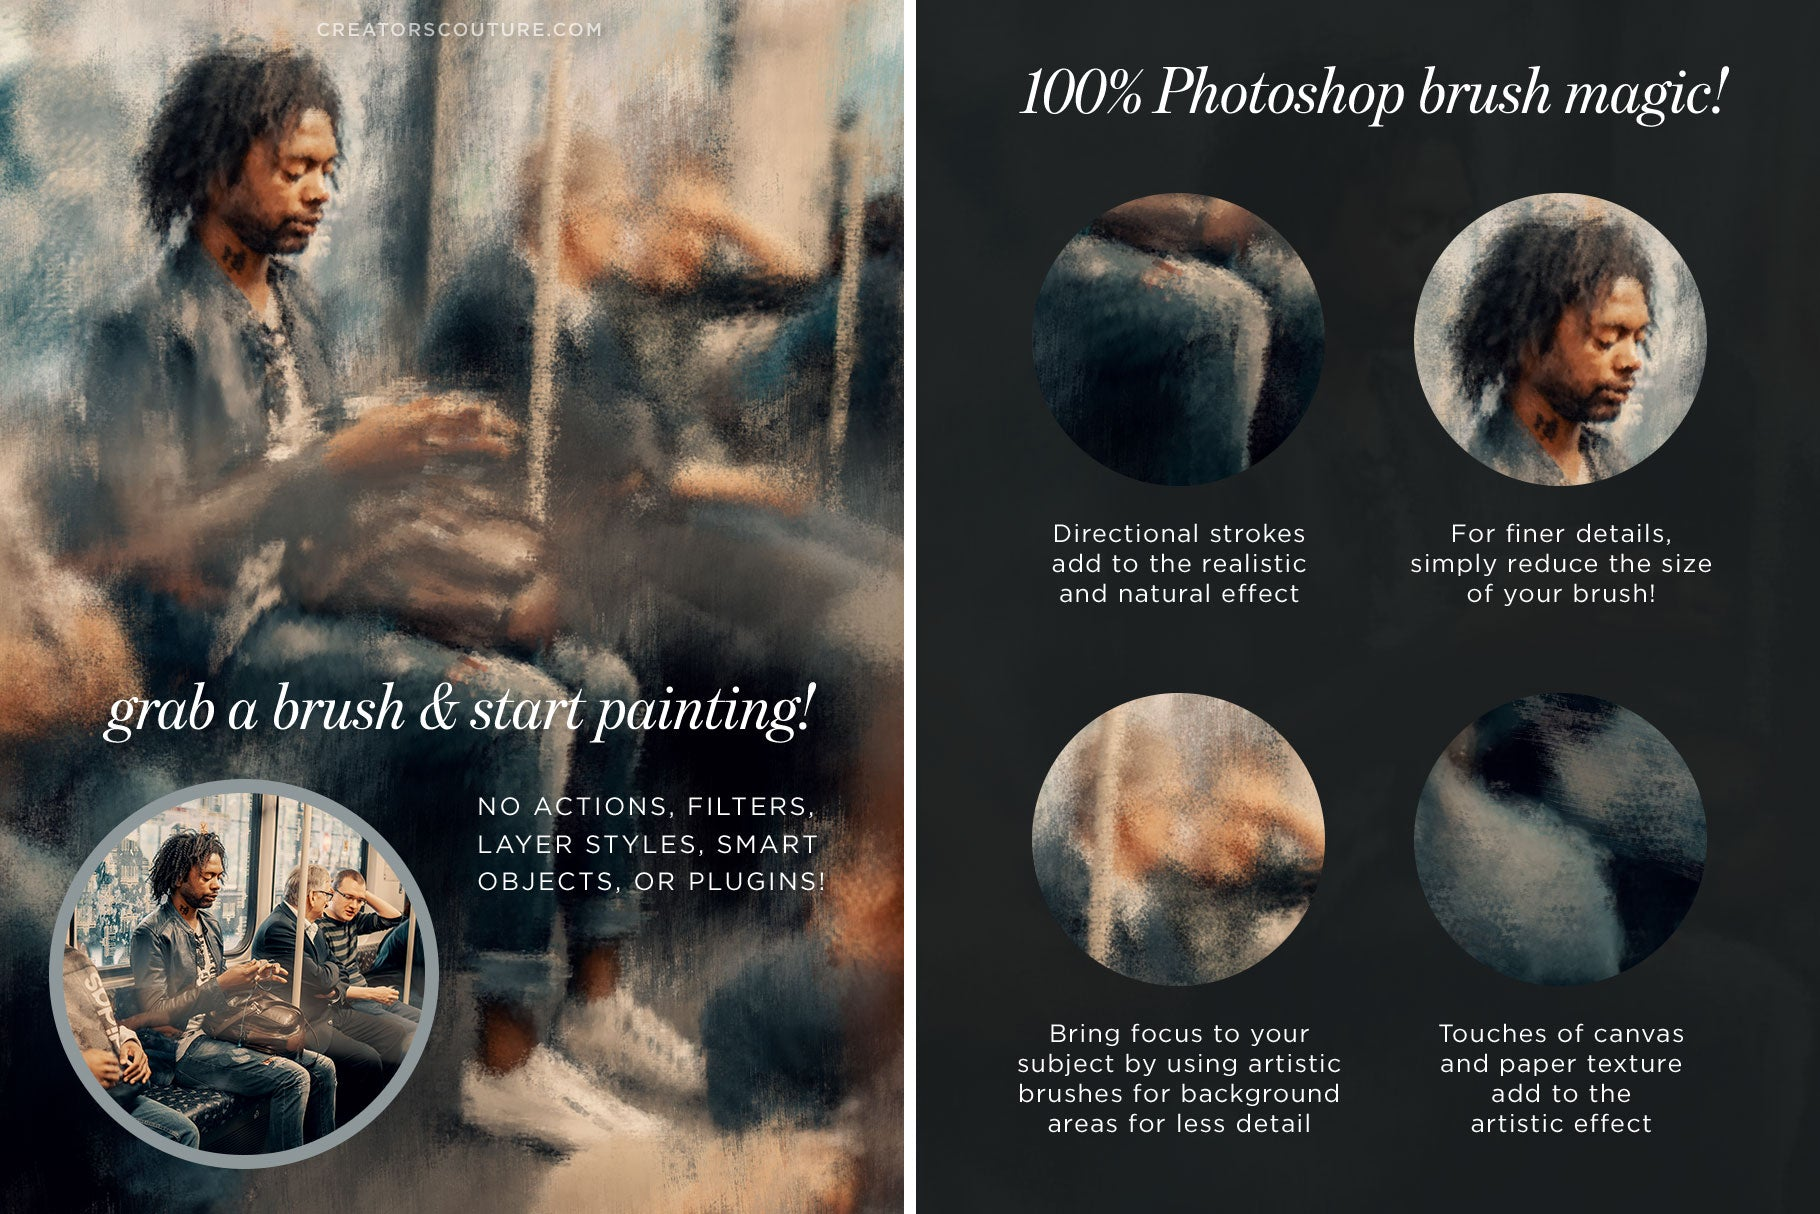 Instapressionist Photoshop Brush Magic: EARLY ACCESS PRICING ENDS SOON